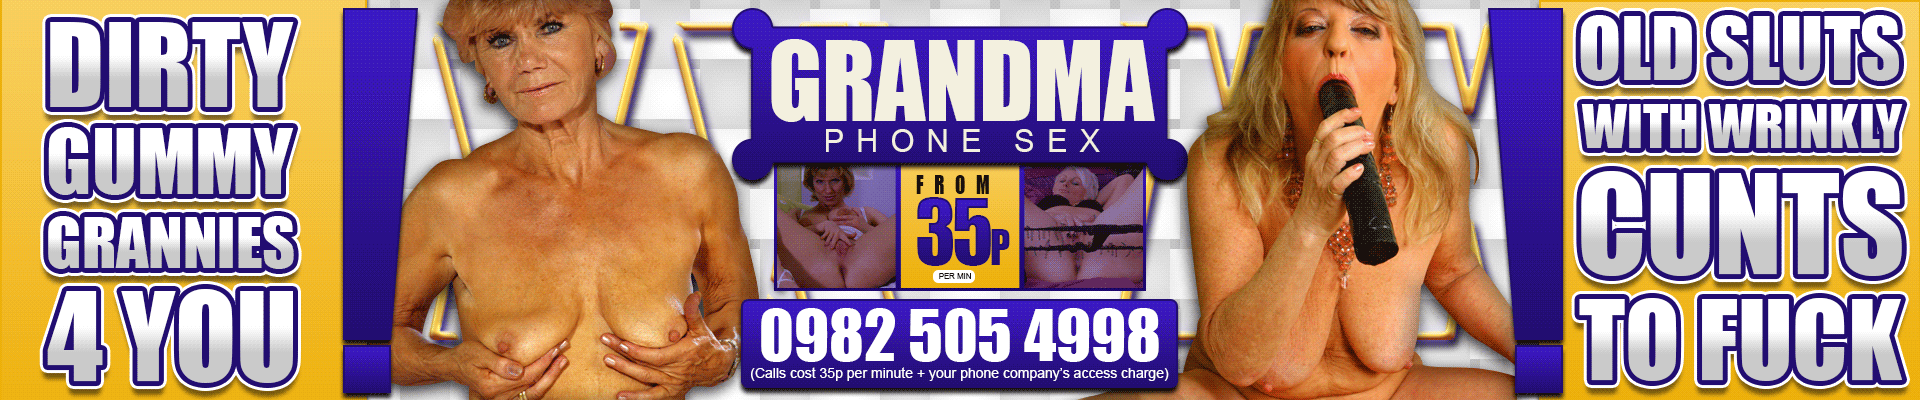 grandma-phone-sex-header